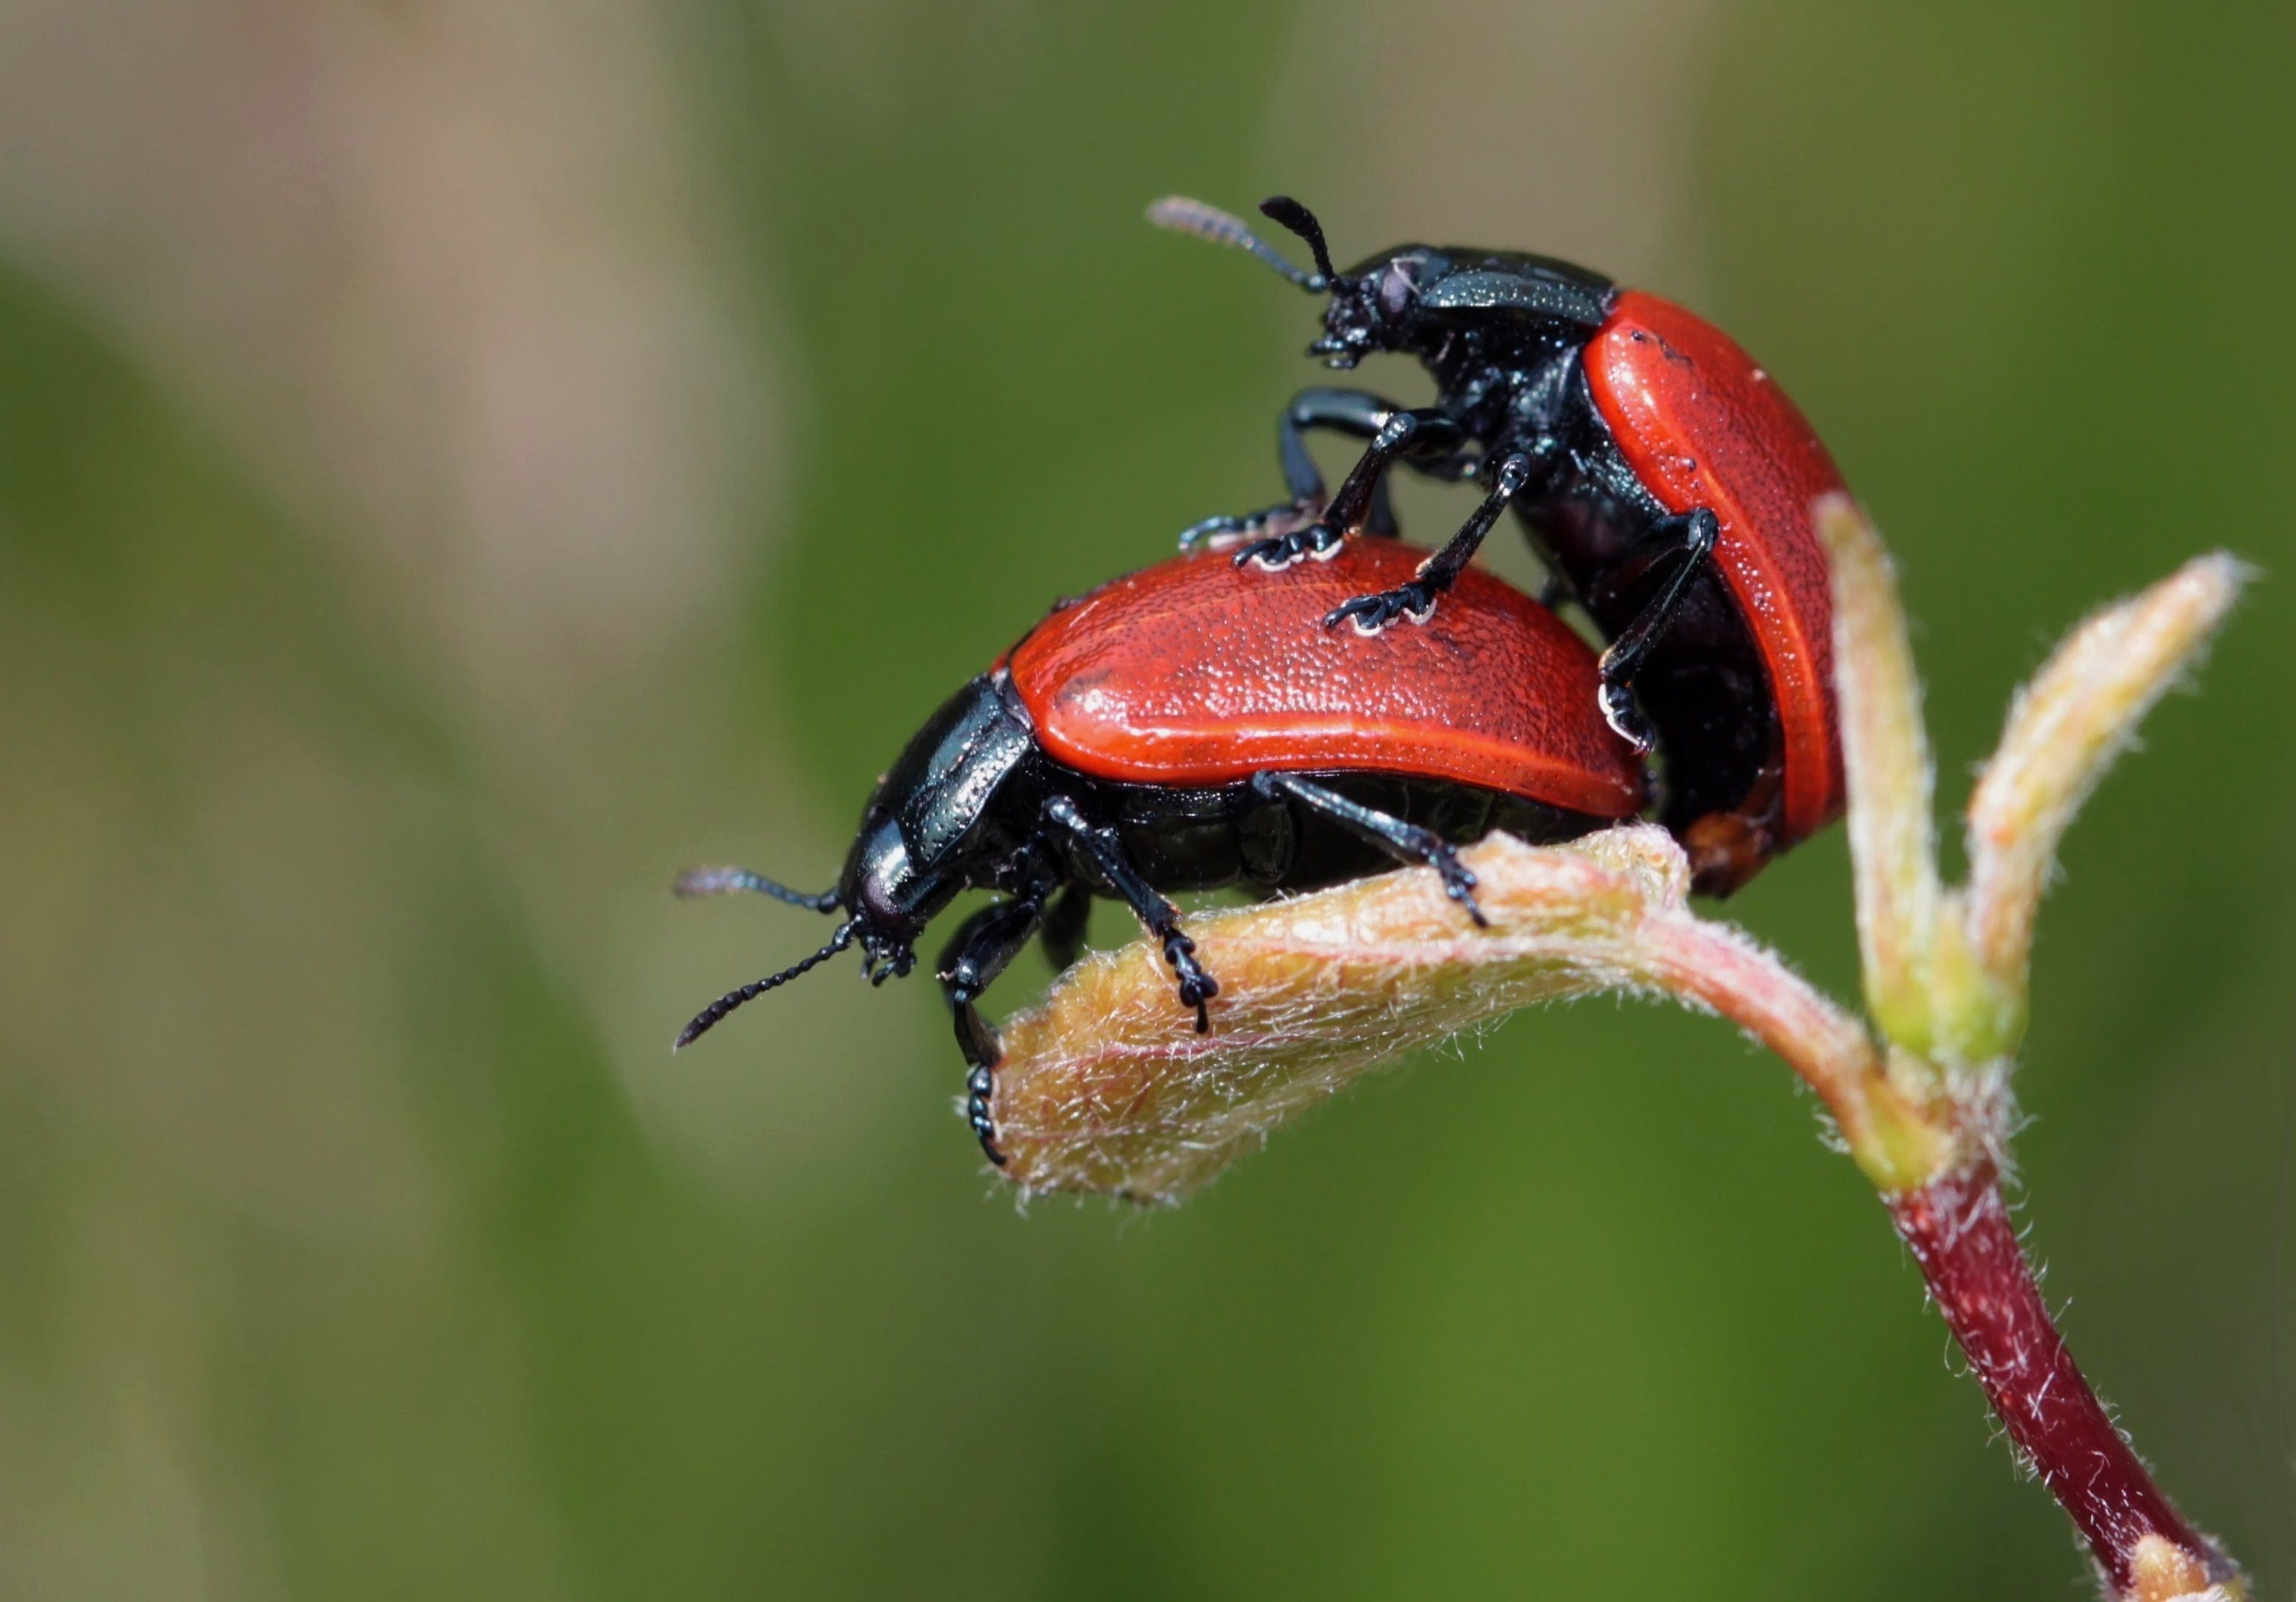 Black Red Beetle on Top of Another Red Black Beetle